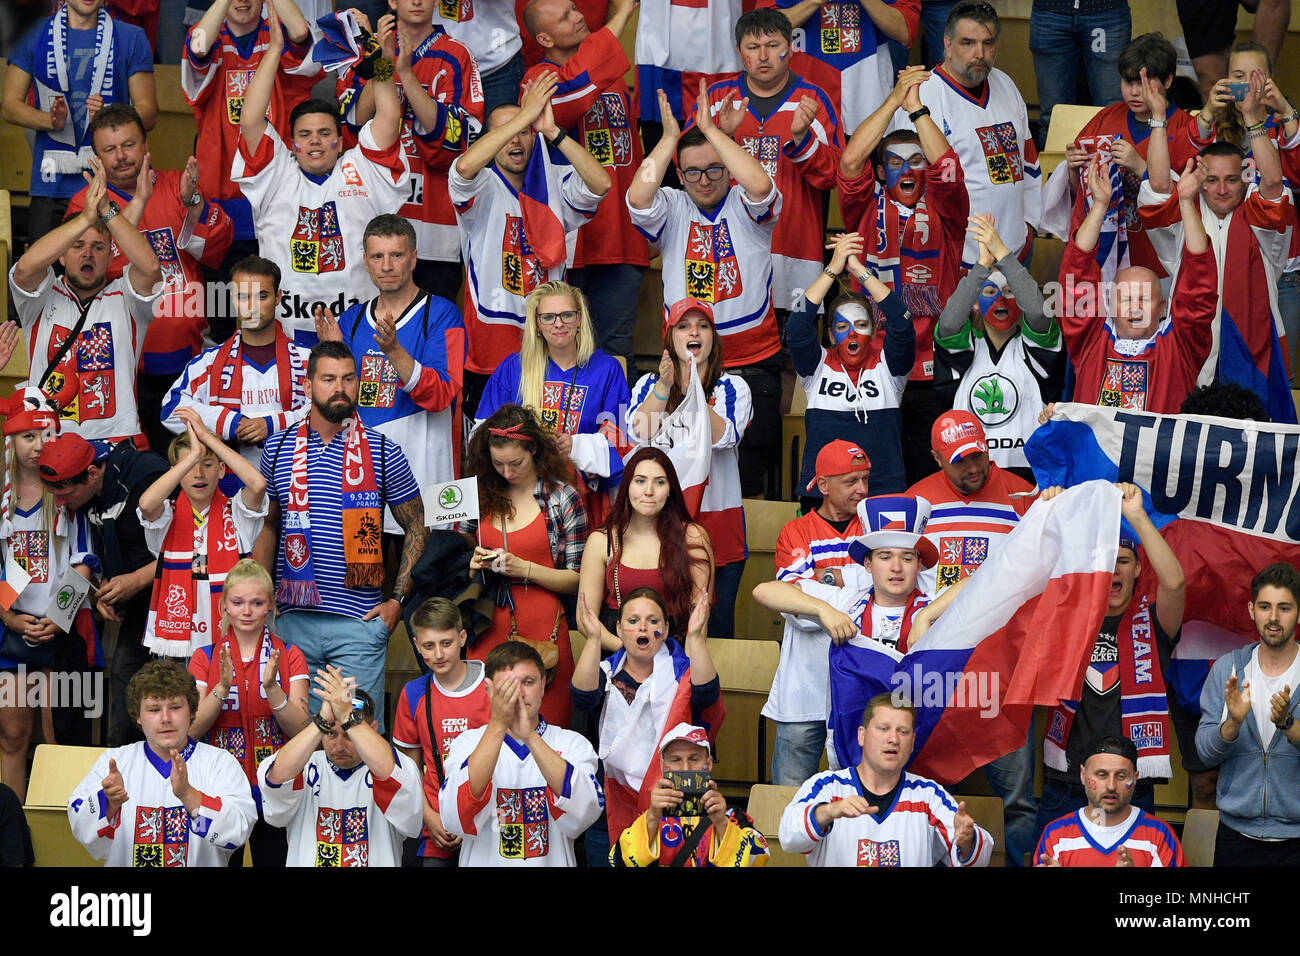 Czech fans during the Ice Hockey World Championships quarterfinal match USA vs Czech Republic in Herning, Denmark, May 17, 2018. (CTK Photo/Ondrej Deml) Stock Photo